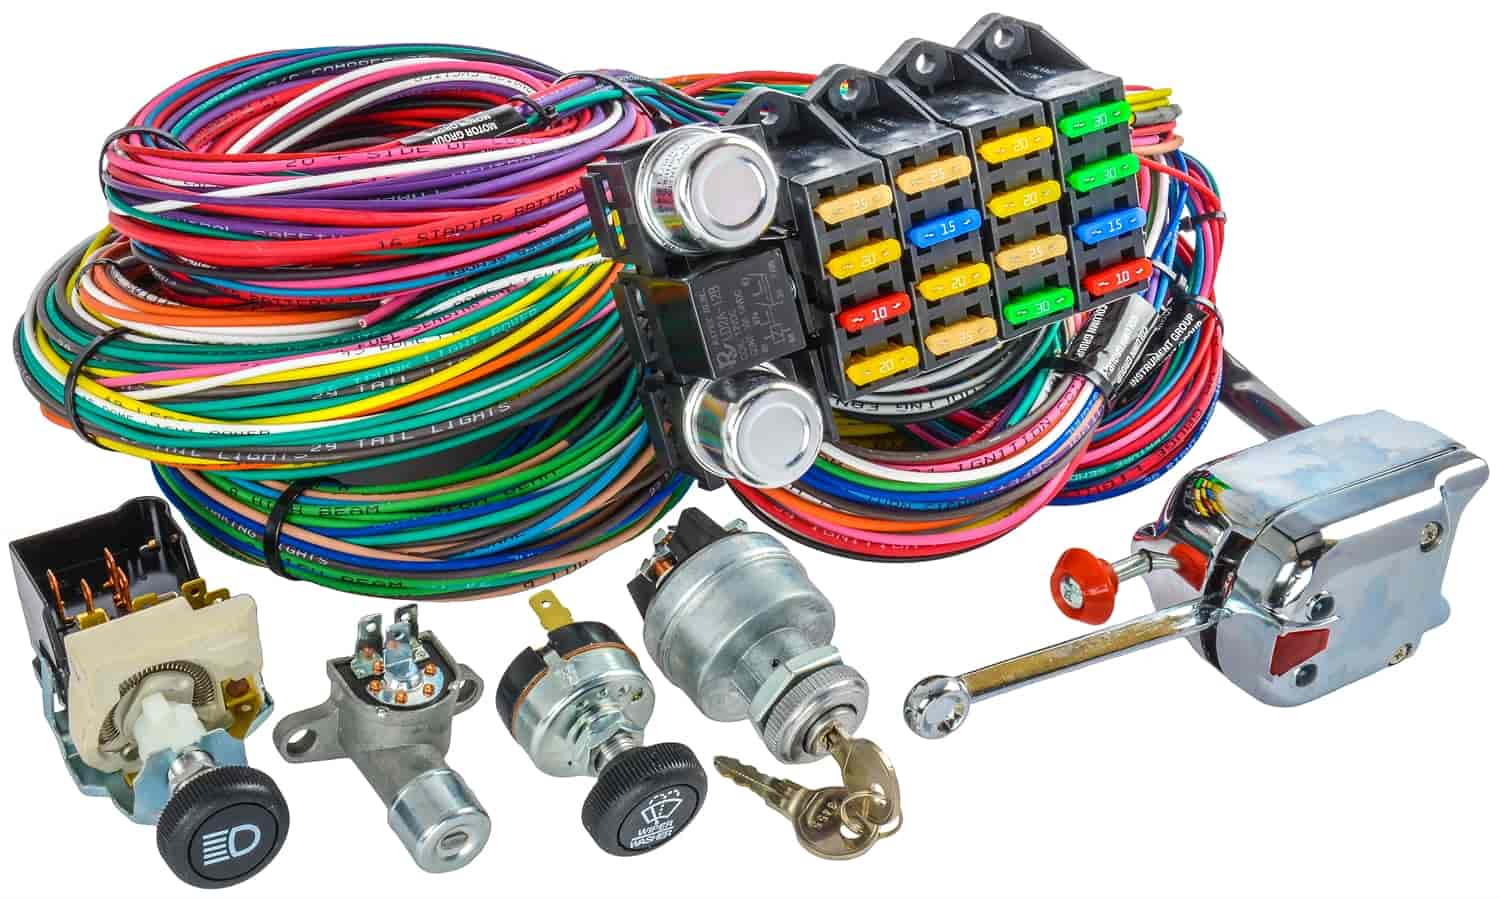 555 10405k jegs performance products 10405k universal wiring harness jegs universal wiring harness at virtualis.co